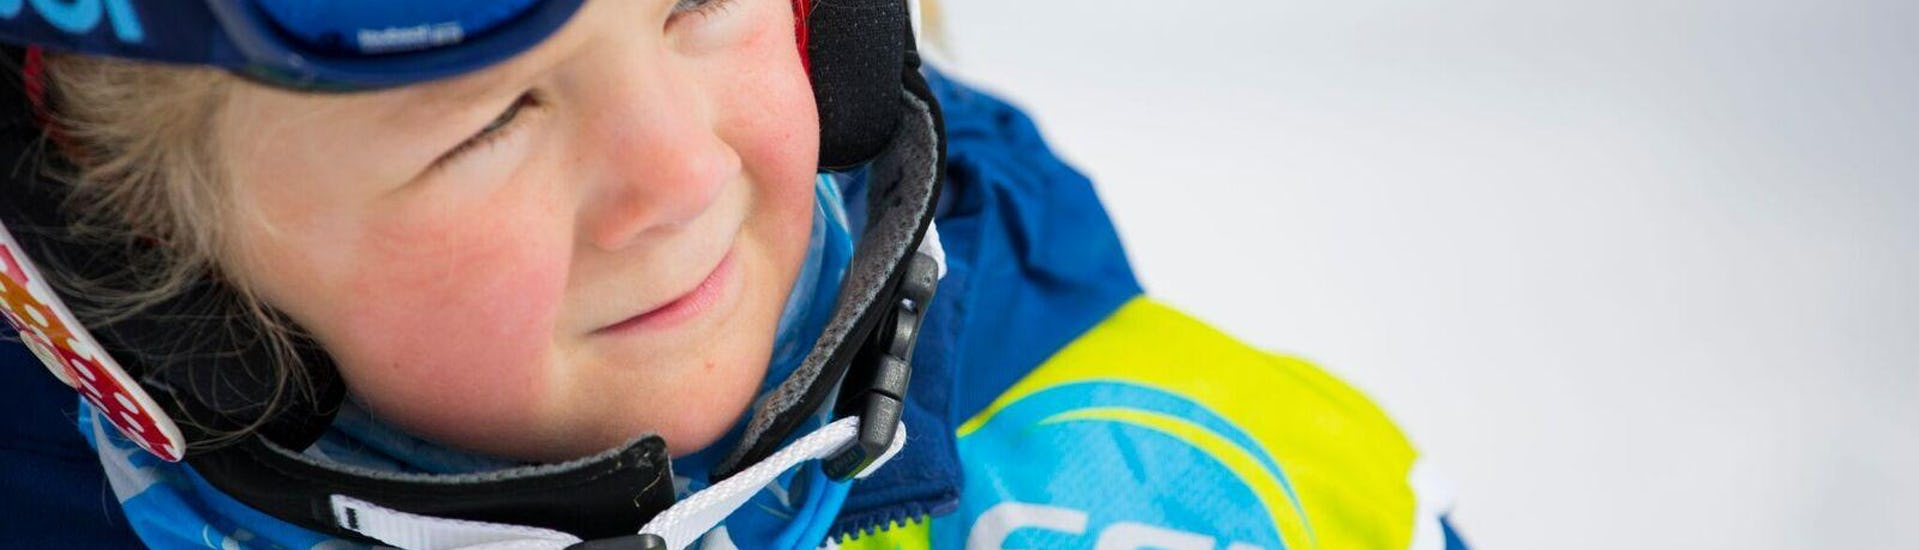 Ski Lessons for Kids (4-5 years) - Beginners